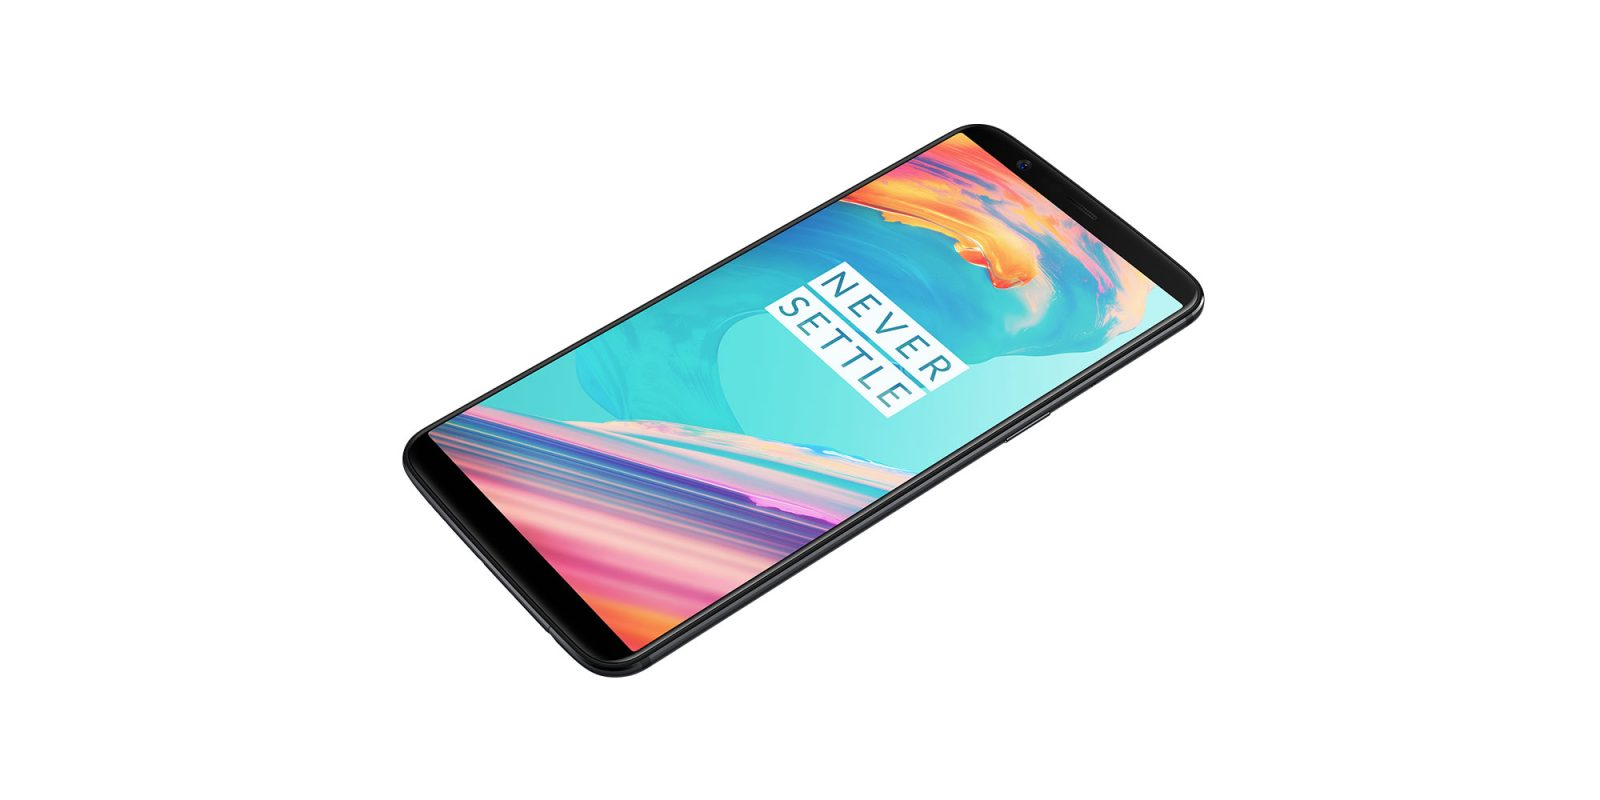 OnePlus 5T Flash Sale On Amazon